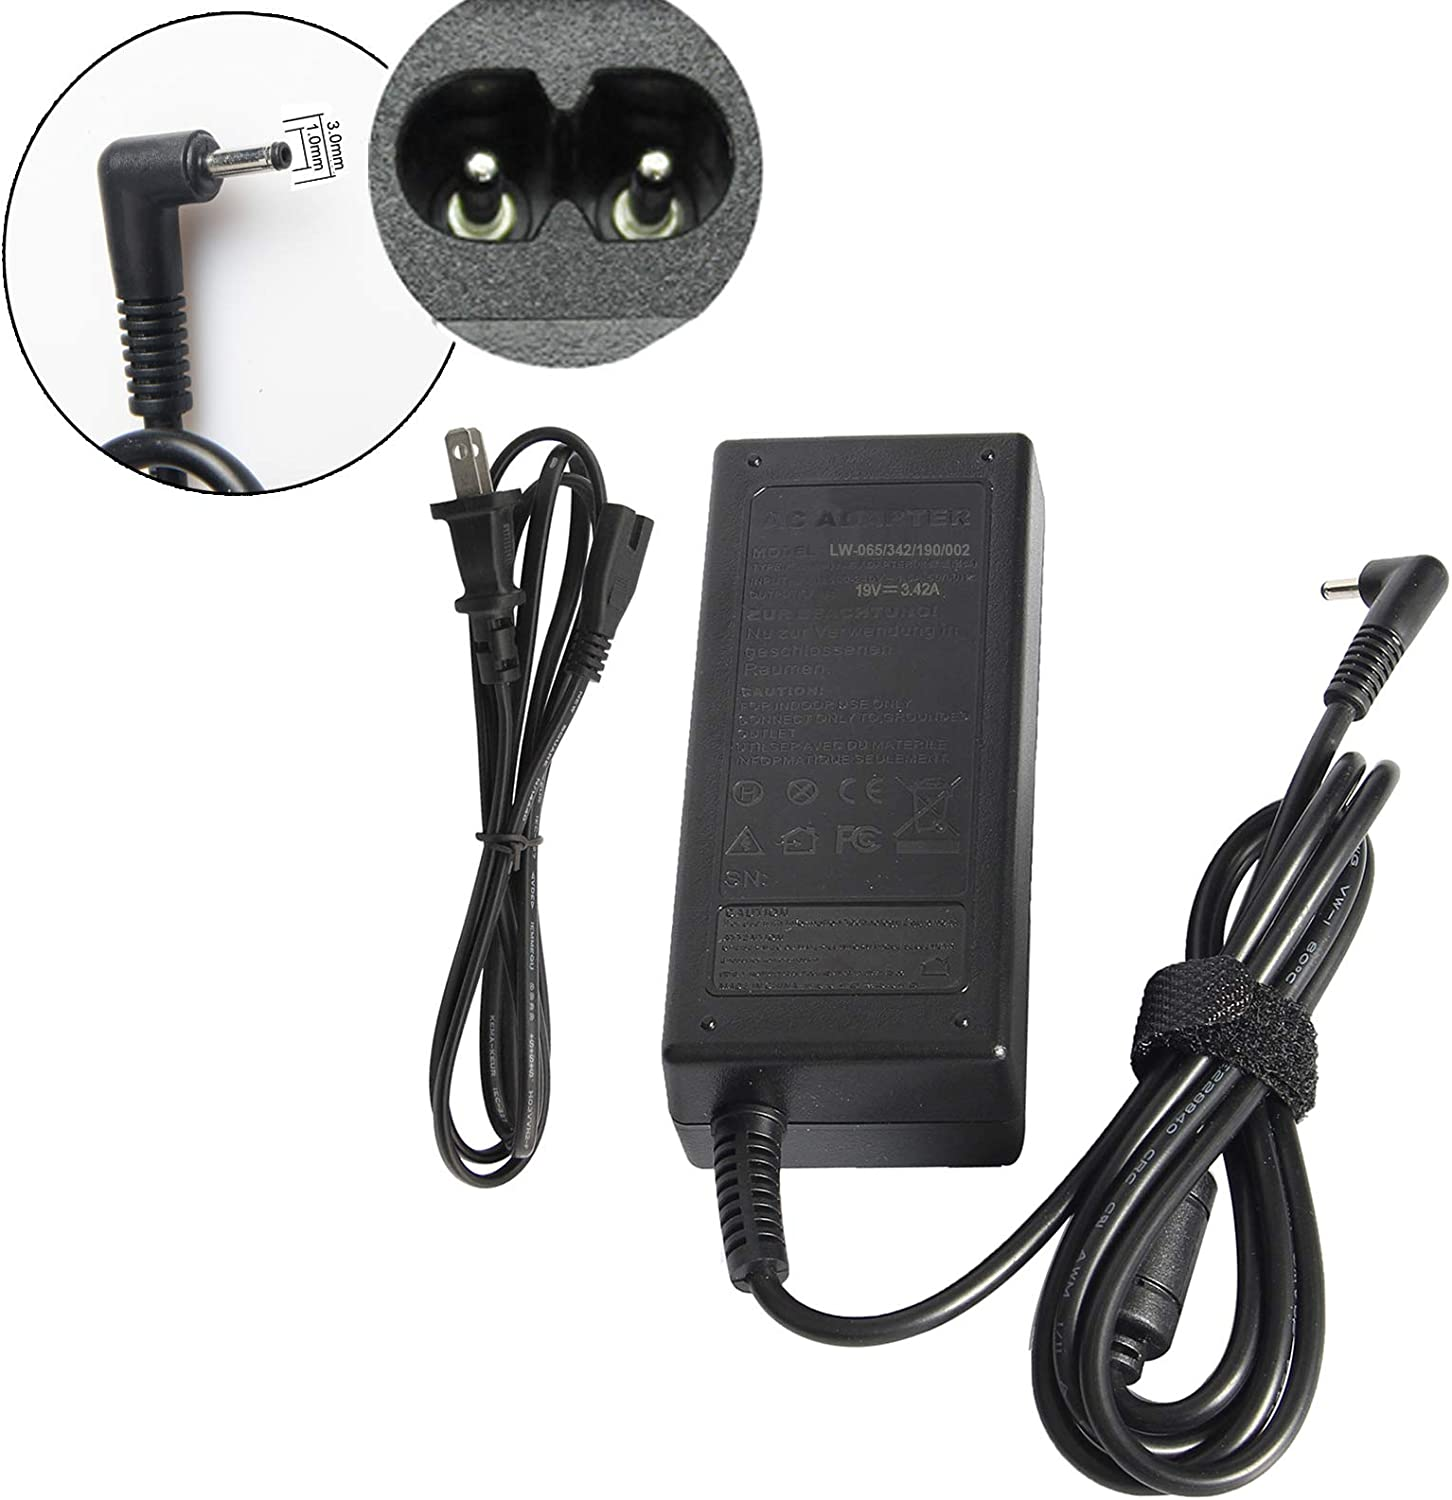 Fancy Buying 65W AC Power Adapter Charger for Acer Chromebook 11 13 14 15 R11 CB3-131-C3SZ C720-2103 CB5-571-C1DZ CB3-111-C670 CB5-132T-C1LK C730E-C4BA; Aspire One Cloudbook 11 14 AO1-131-C7DW C9PM